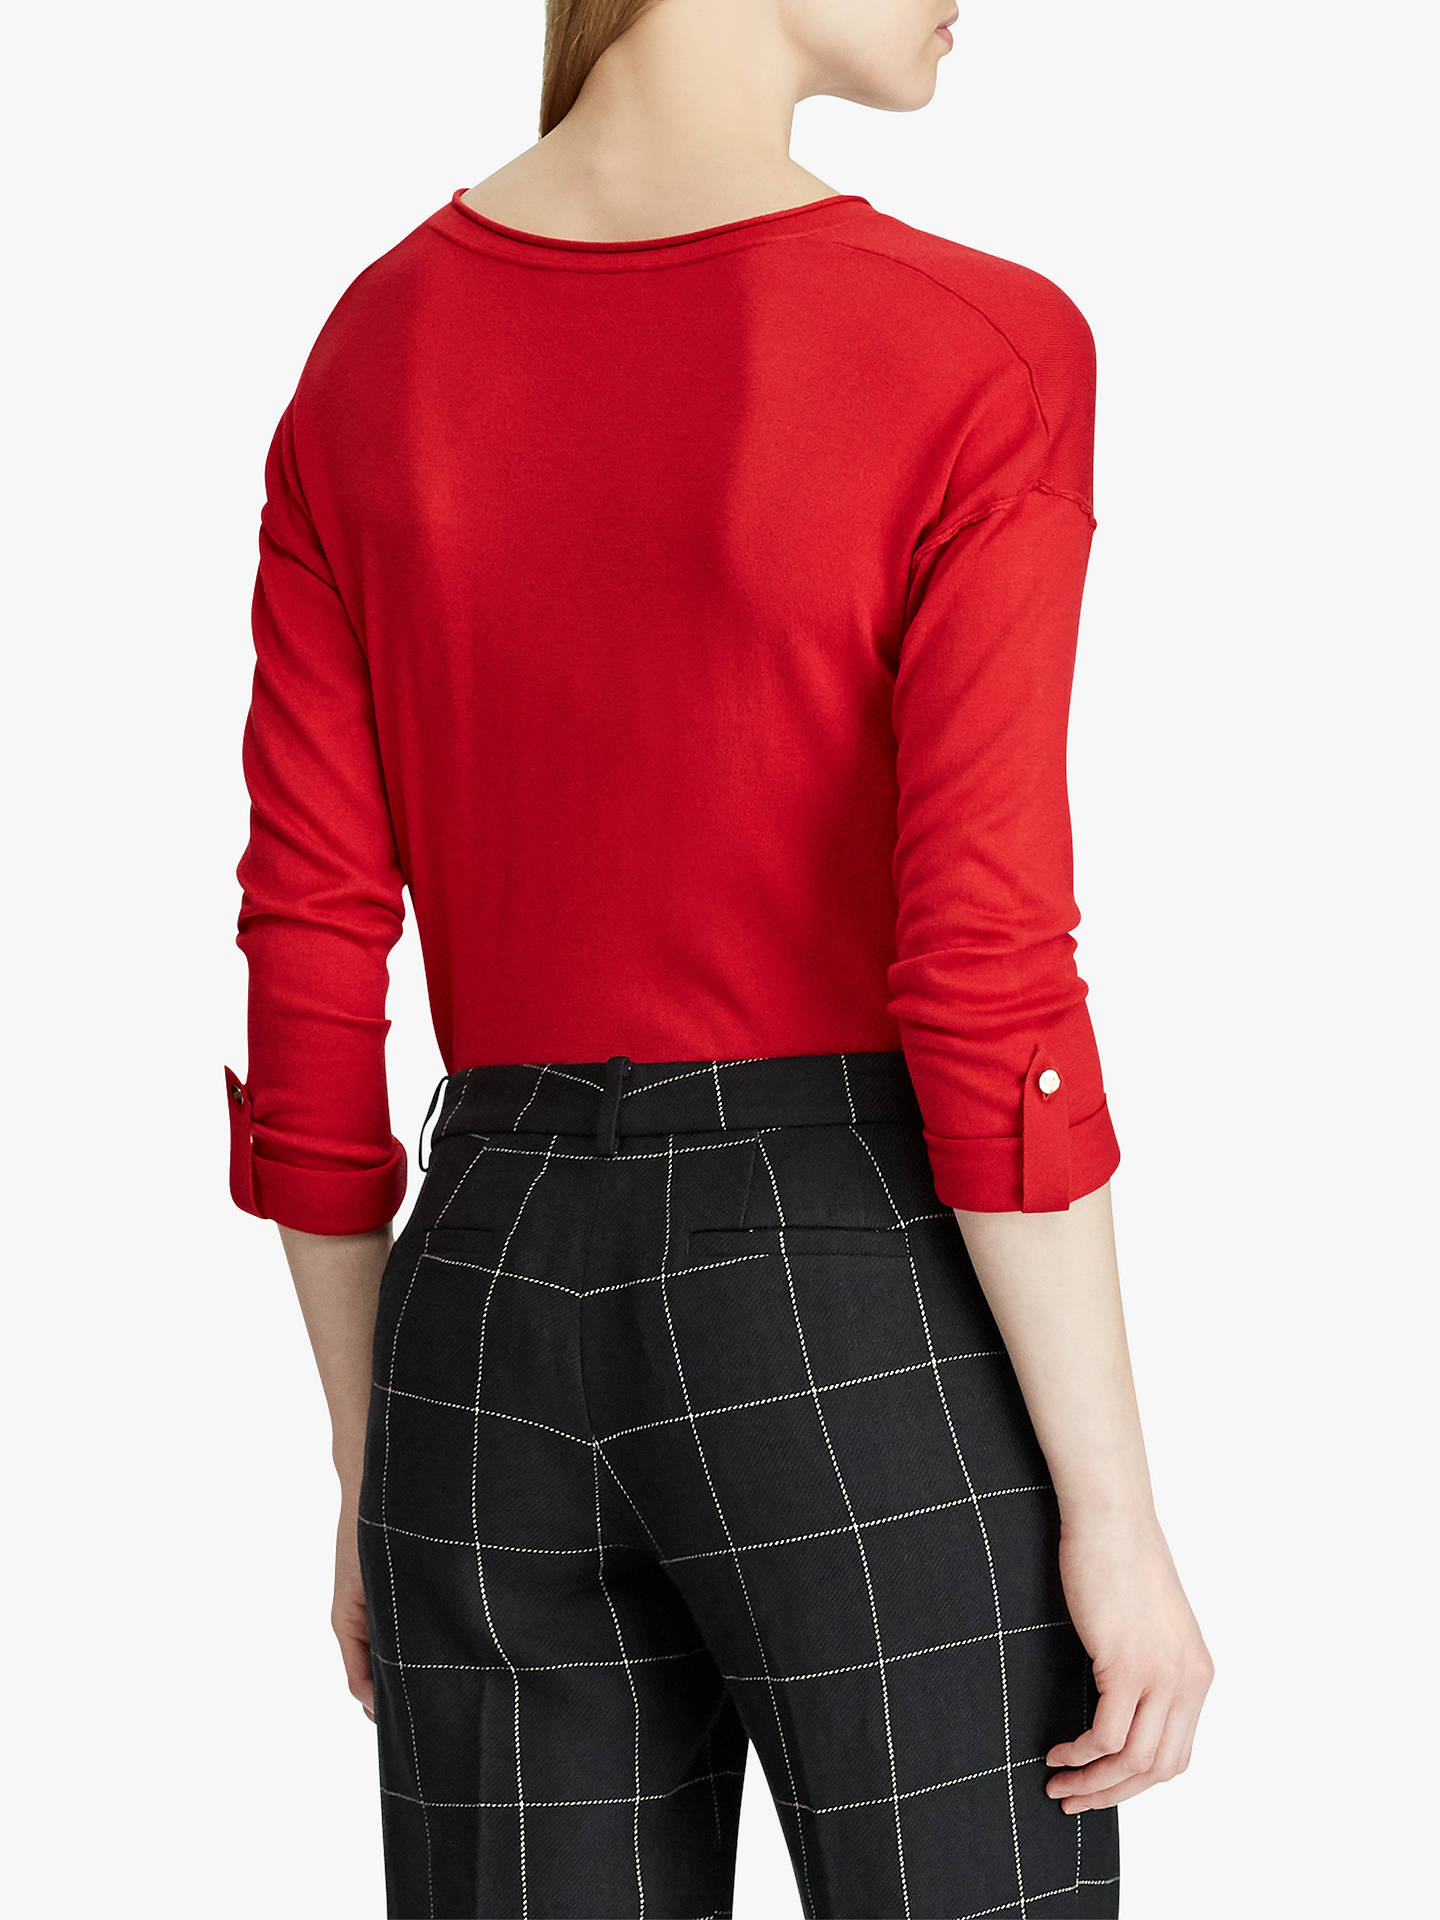 Buy Lauren Ralph Lauren Adrien V-Neck Sweater, Lipstick Red, XS Online at johnlewis.com